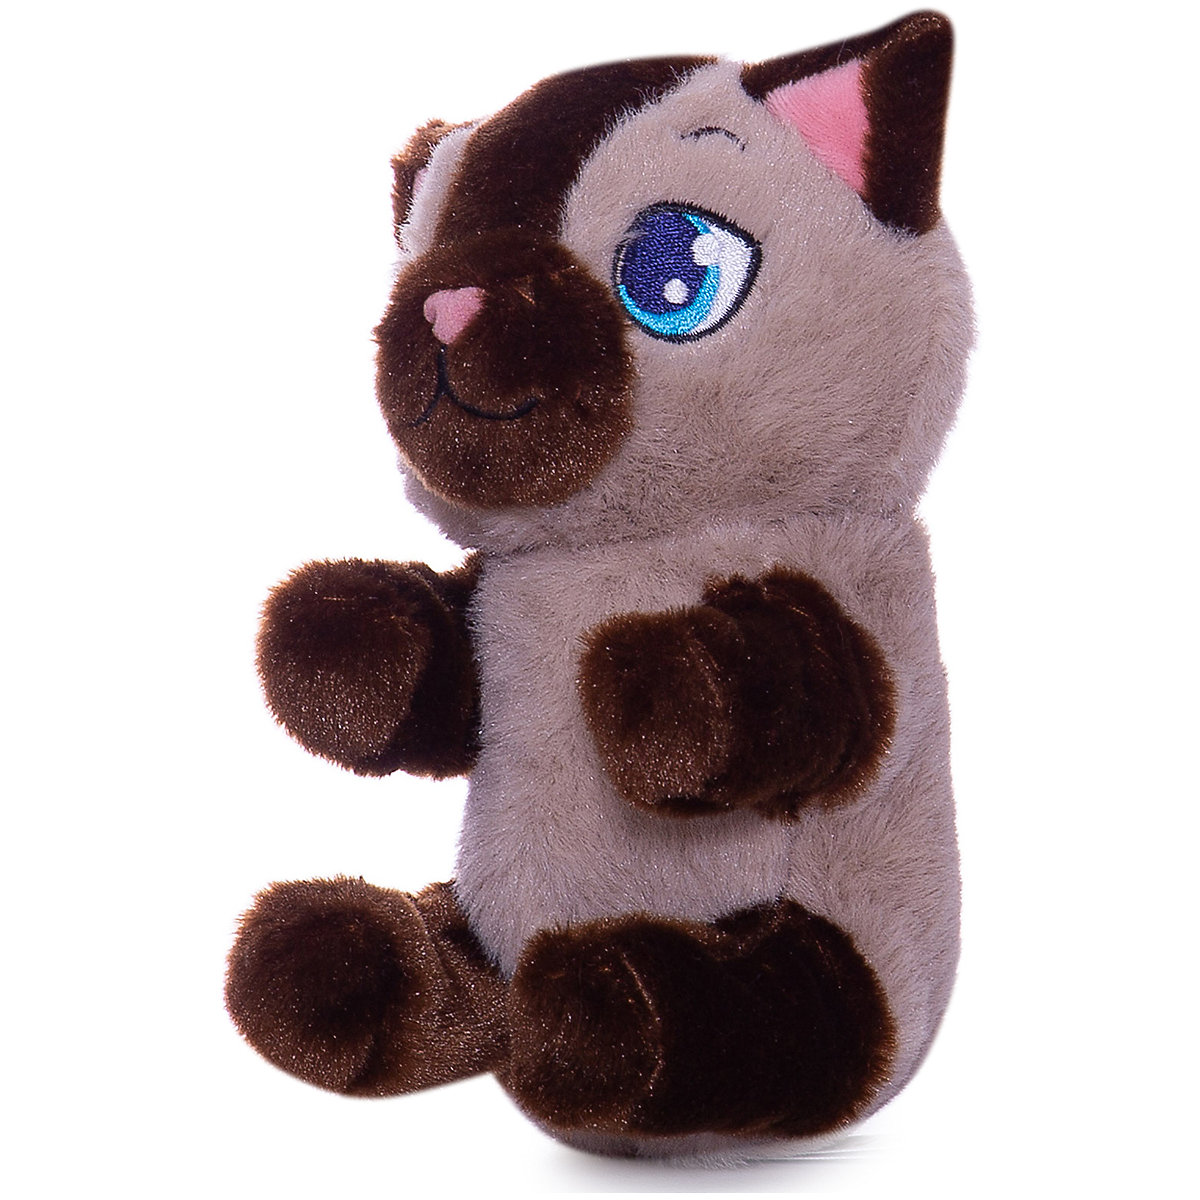 IMC TOYS Electronic Plush 9391984 Doll Musical Talking Friend Sound Robot Animals Girl Boy Play Game Toy Stuffed